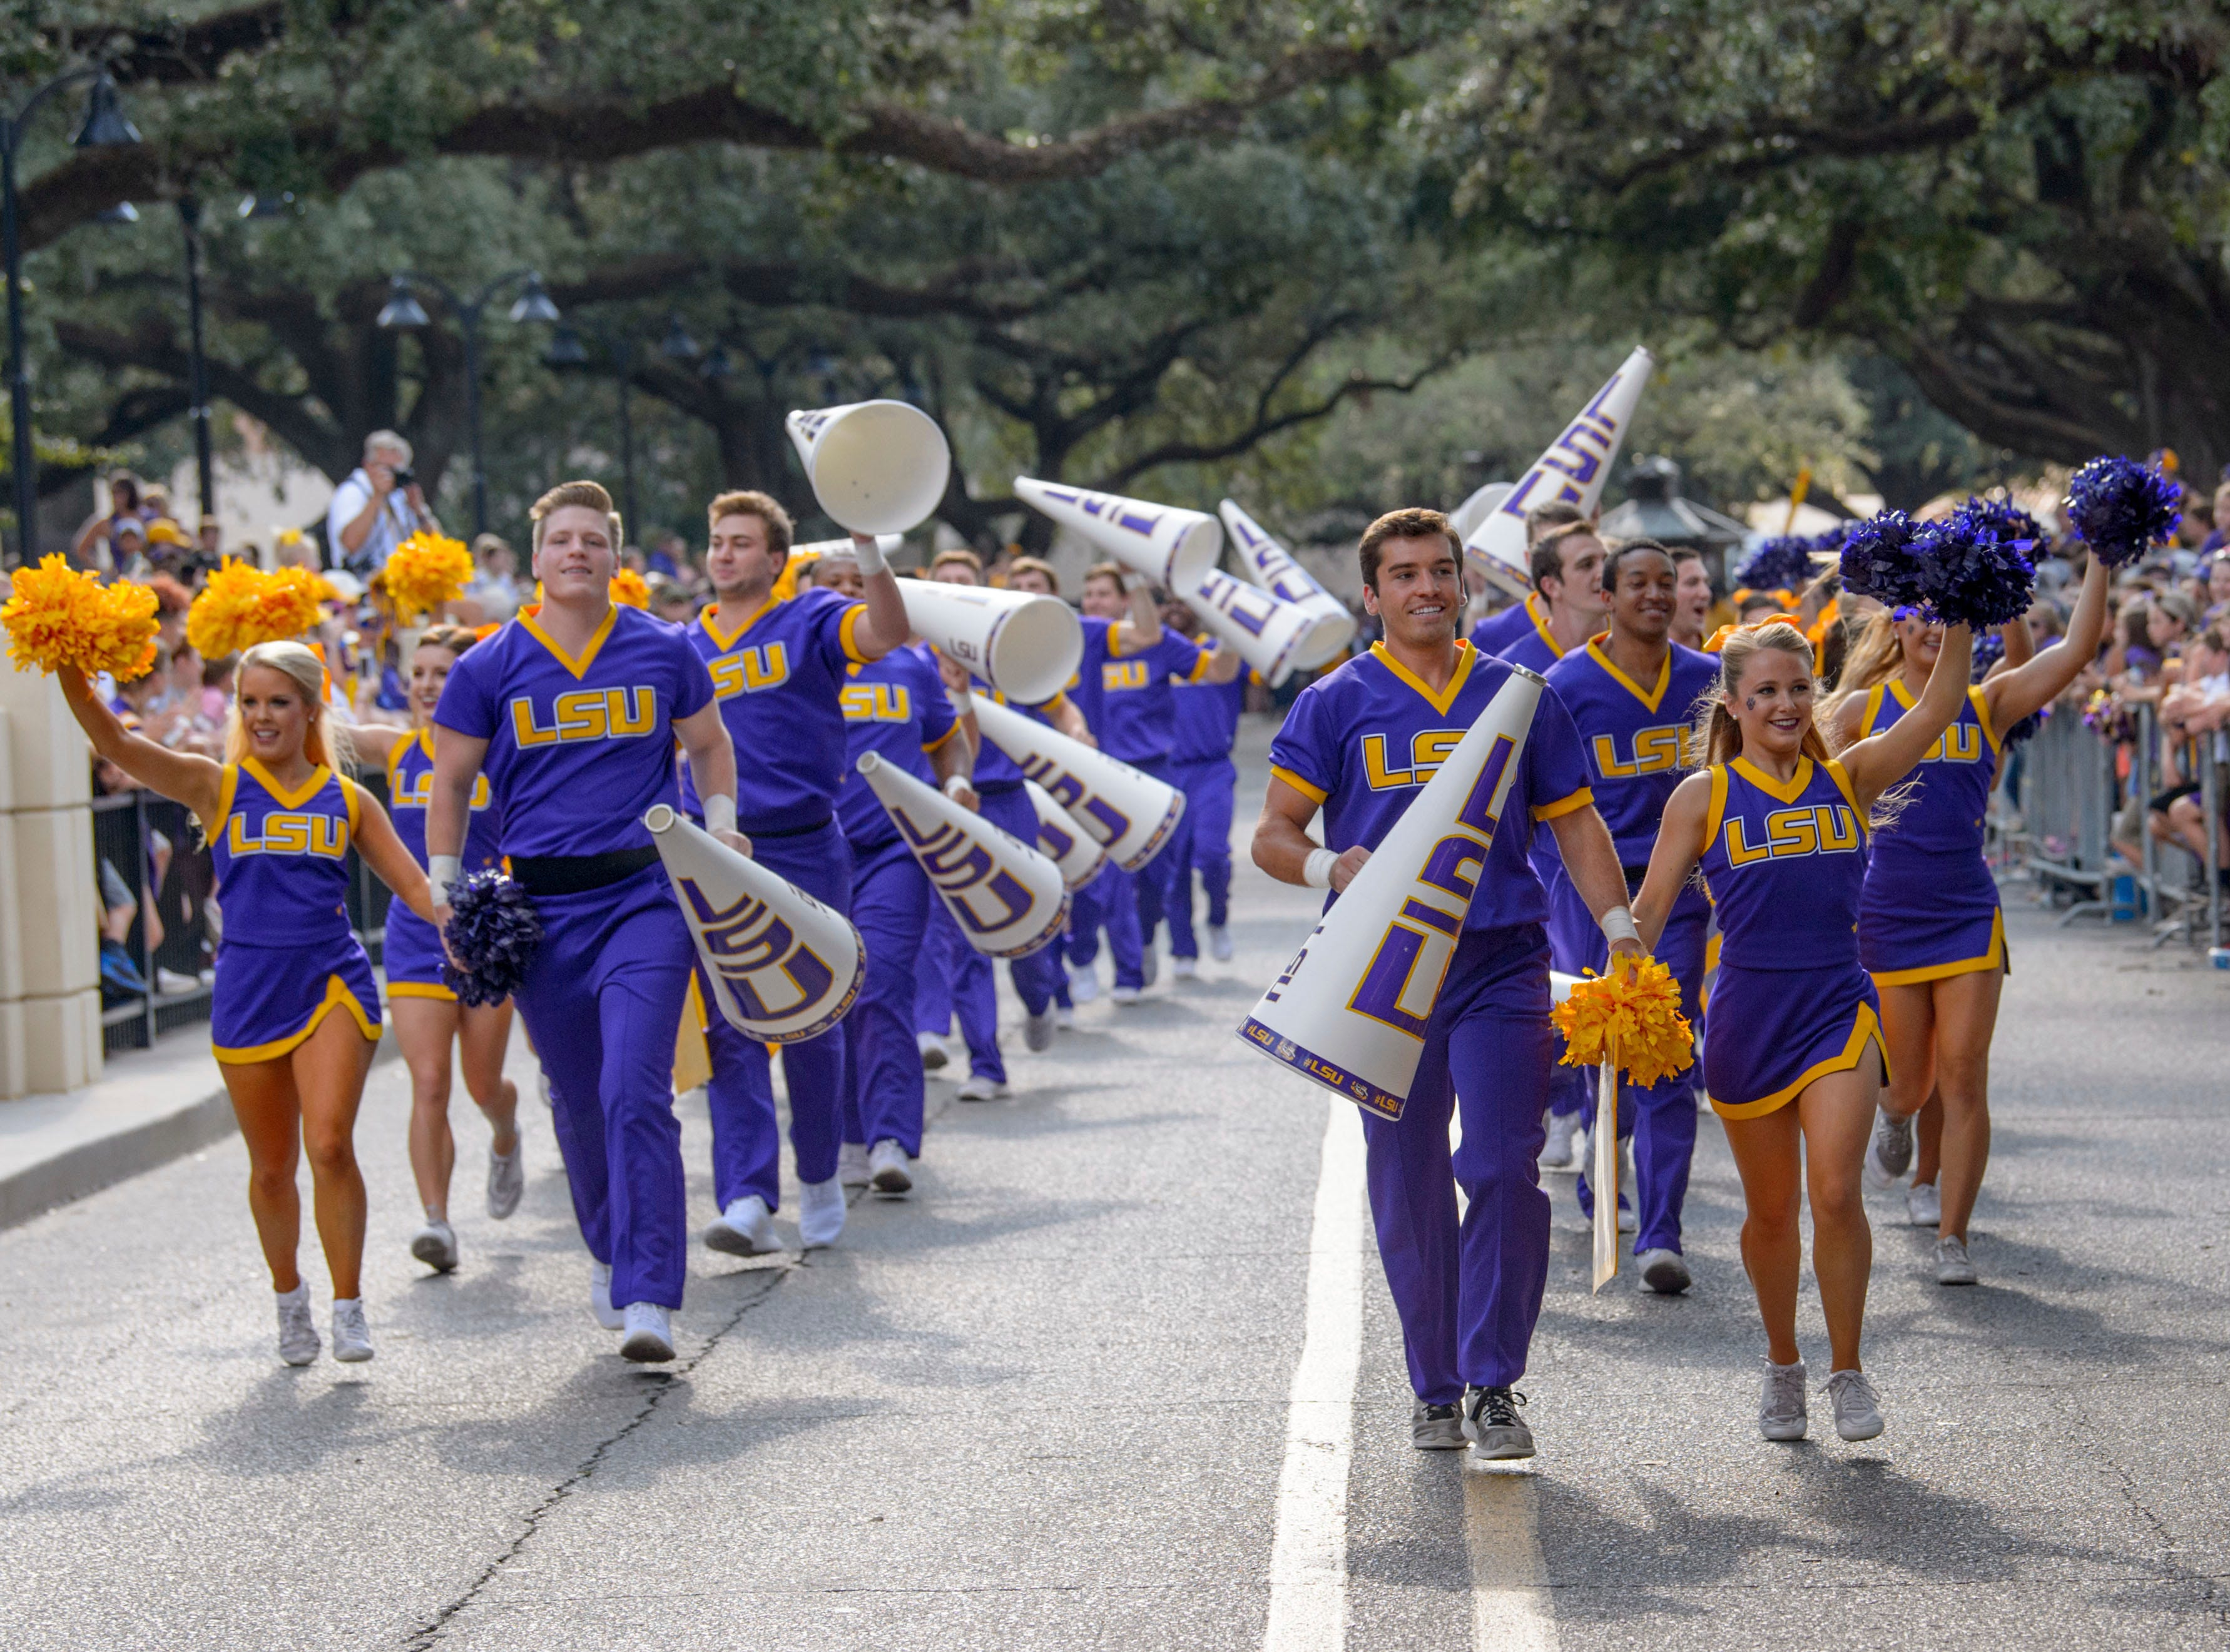 LSU cheerleaders perform before an NCAA college football game against Troy in Baton Rouge, La., Saturday, Sept. 30, 2017. (AP Photo/Matthew Hinton)